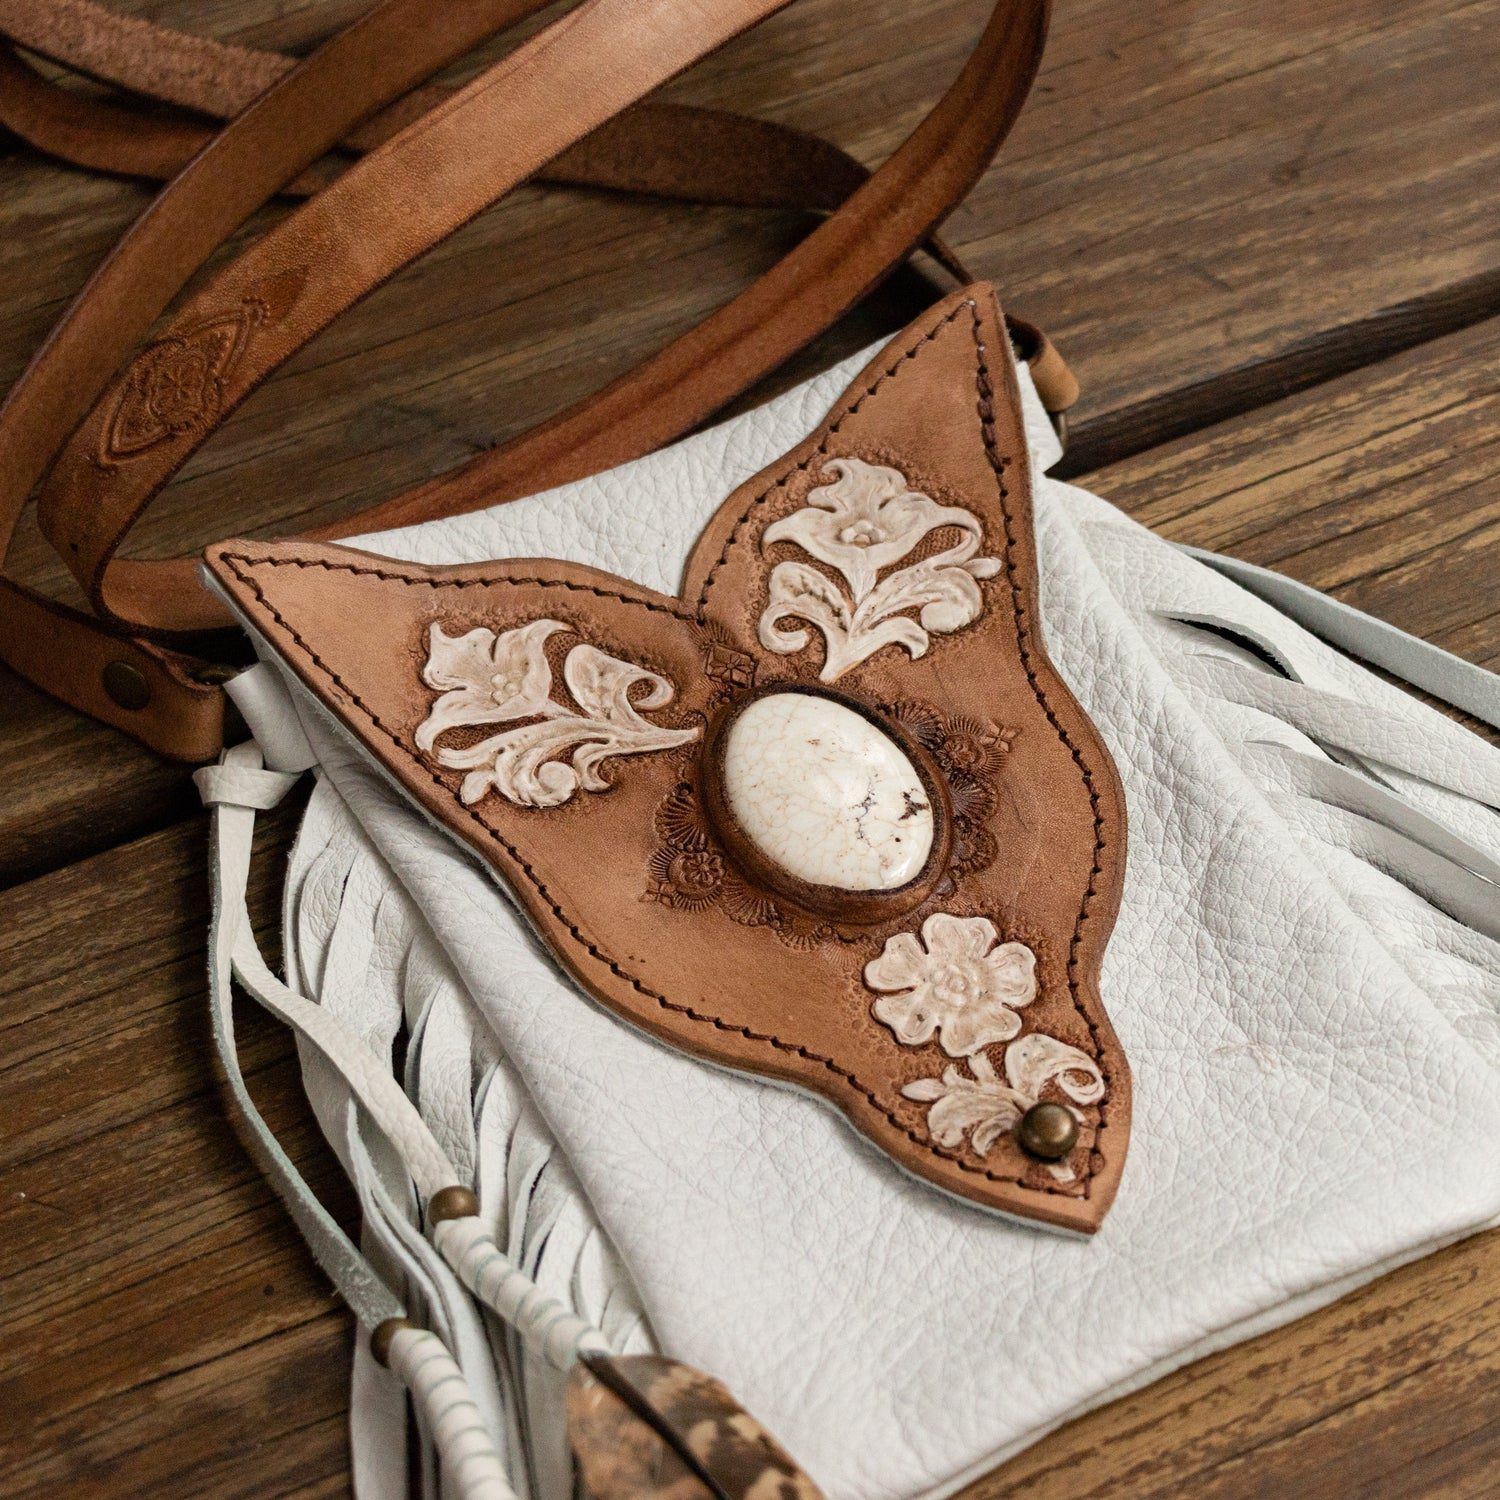 Desert Bloom Gypsy Wanderer Phone Pouch with Howlite - Buffalo Girl